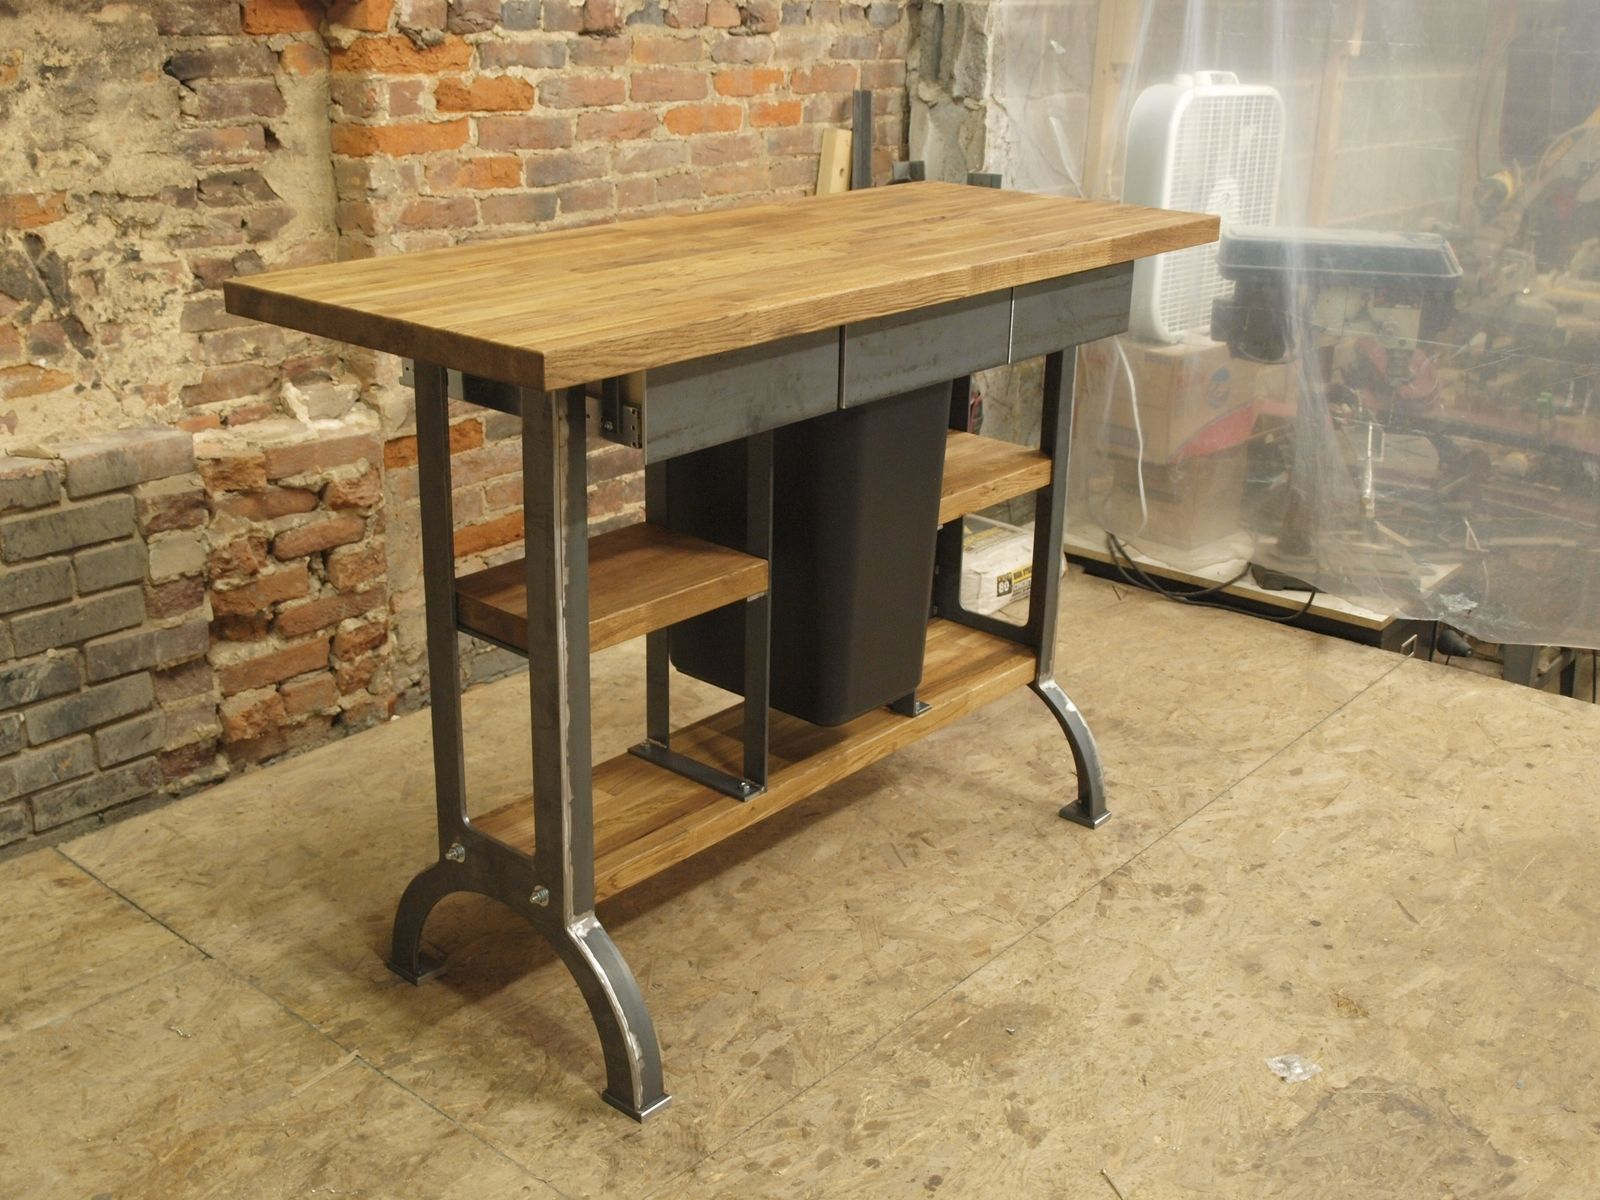 Hand made modern industrial kitchen island console table by camposironworks - Industrial kitchen island for sale ...